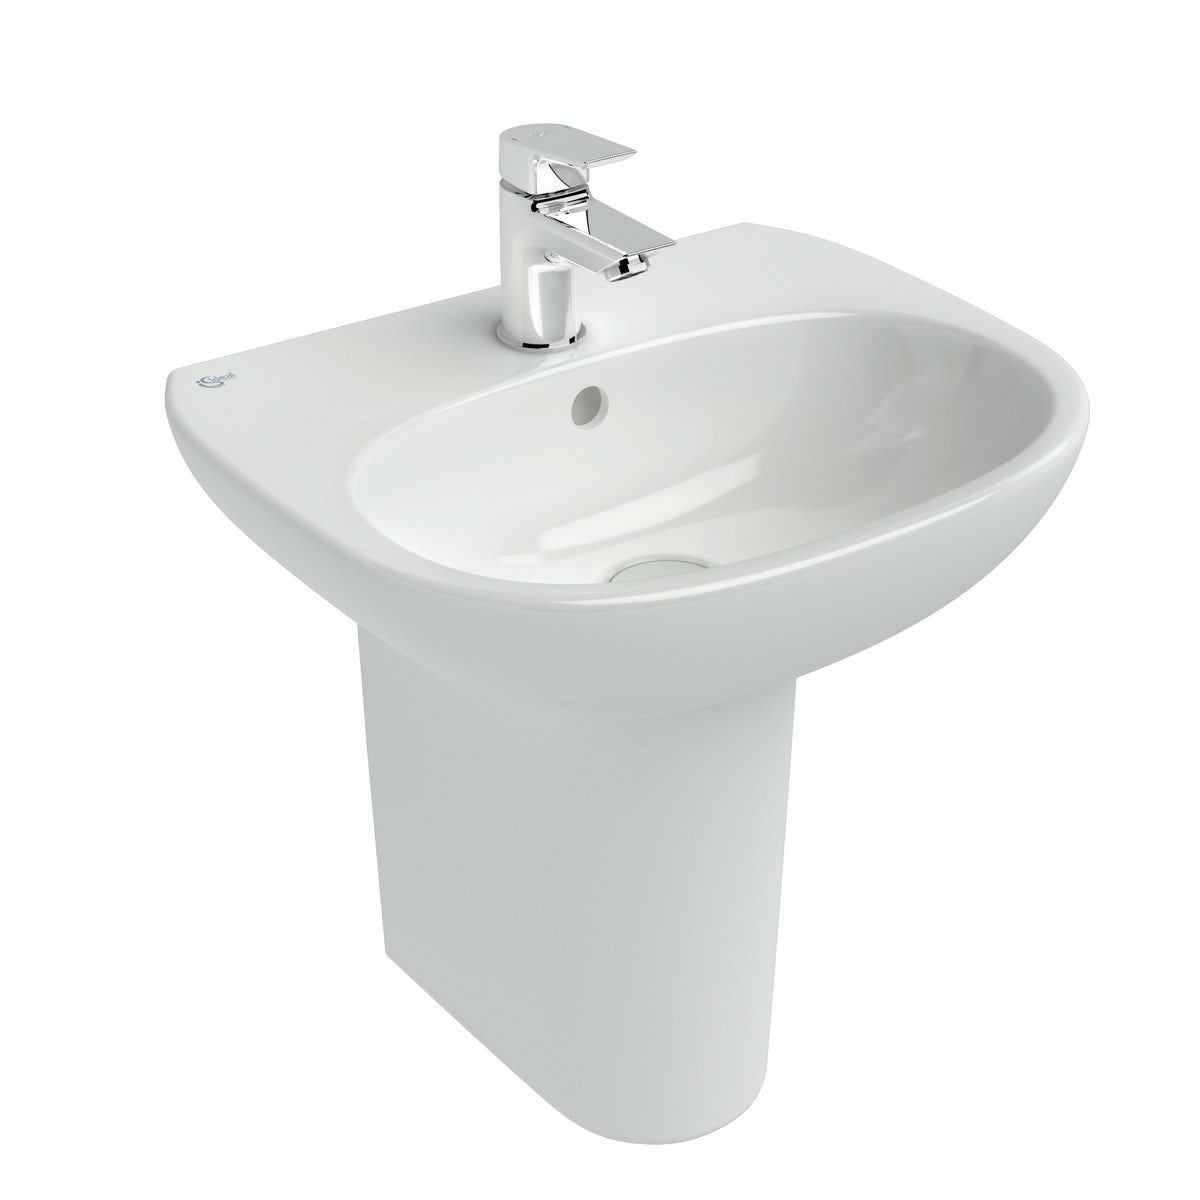 Ideal Standard Tesi 1 tap hole semi pedestal basin 450mm